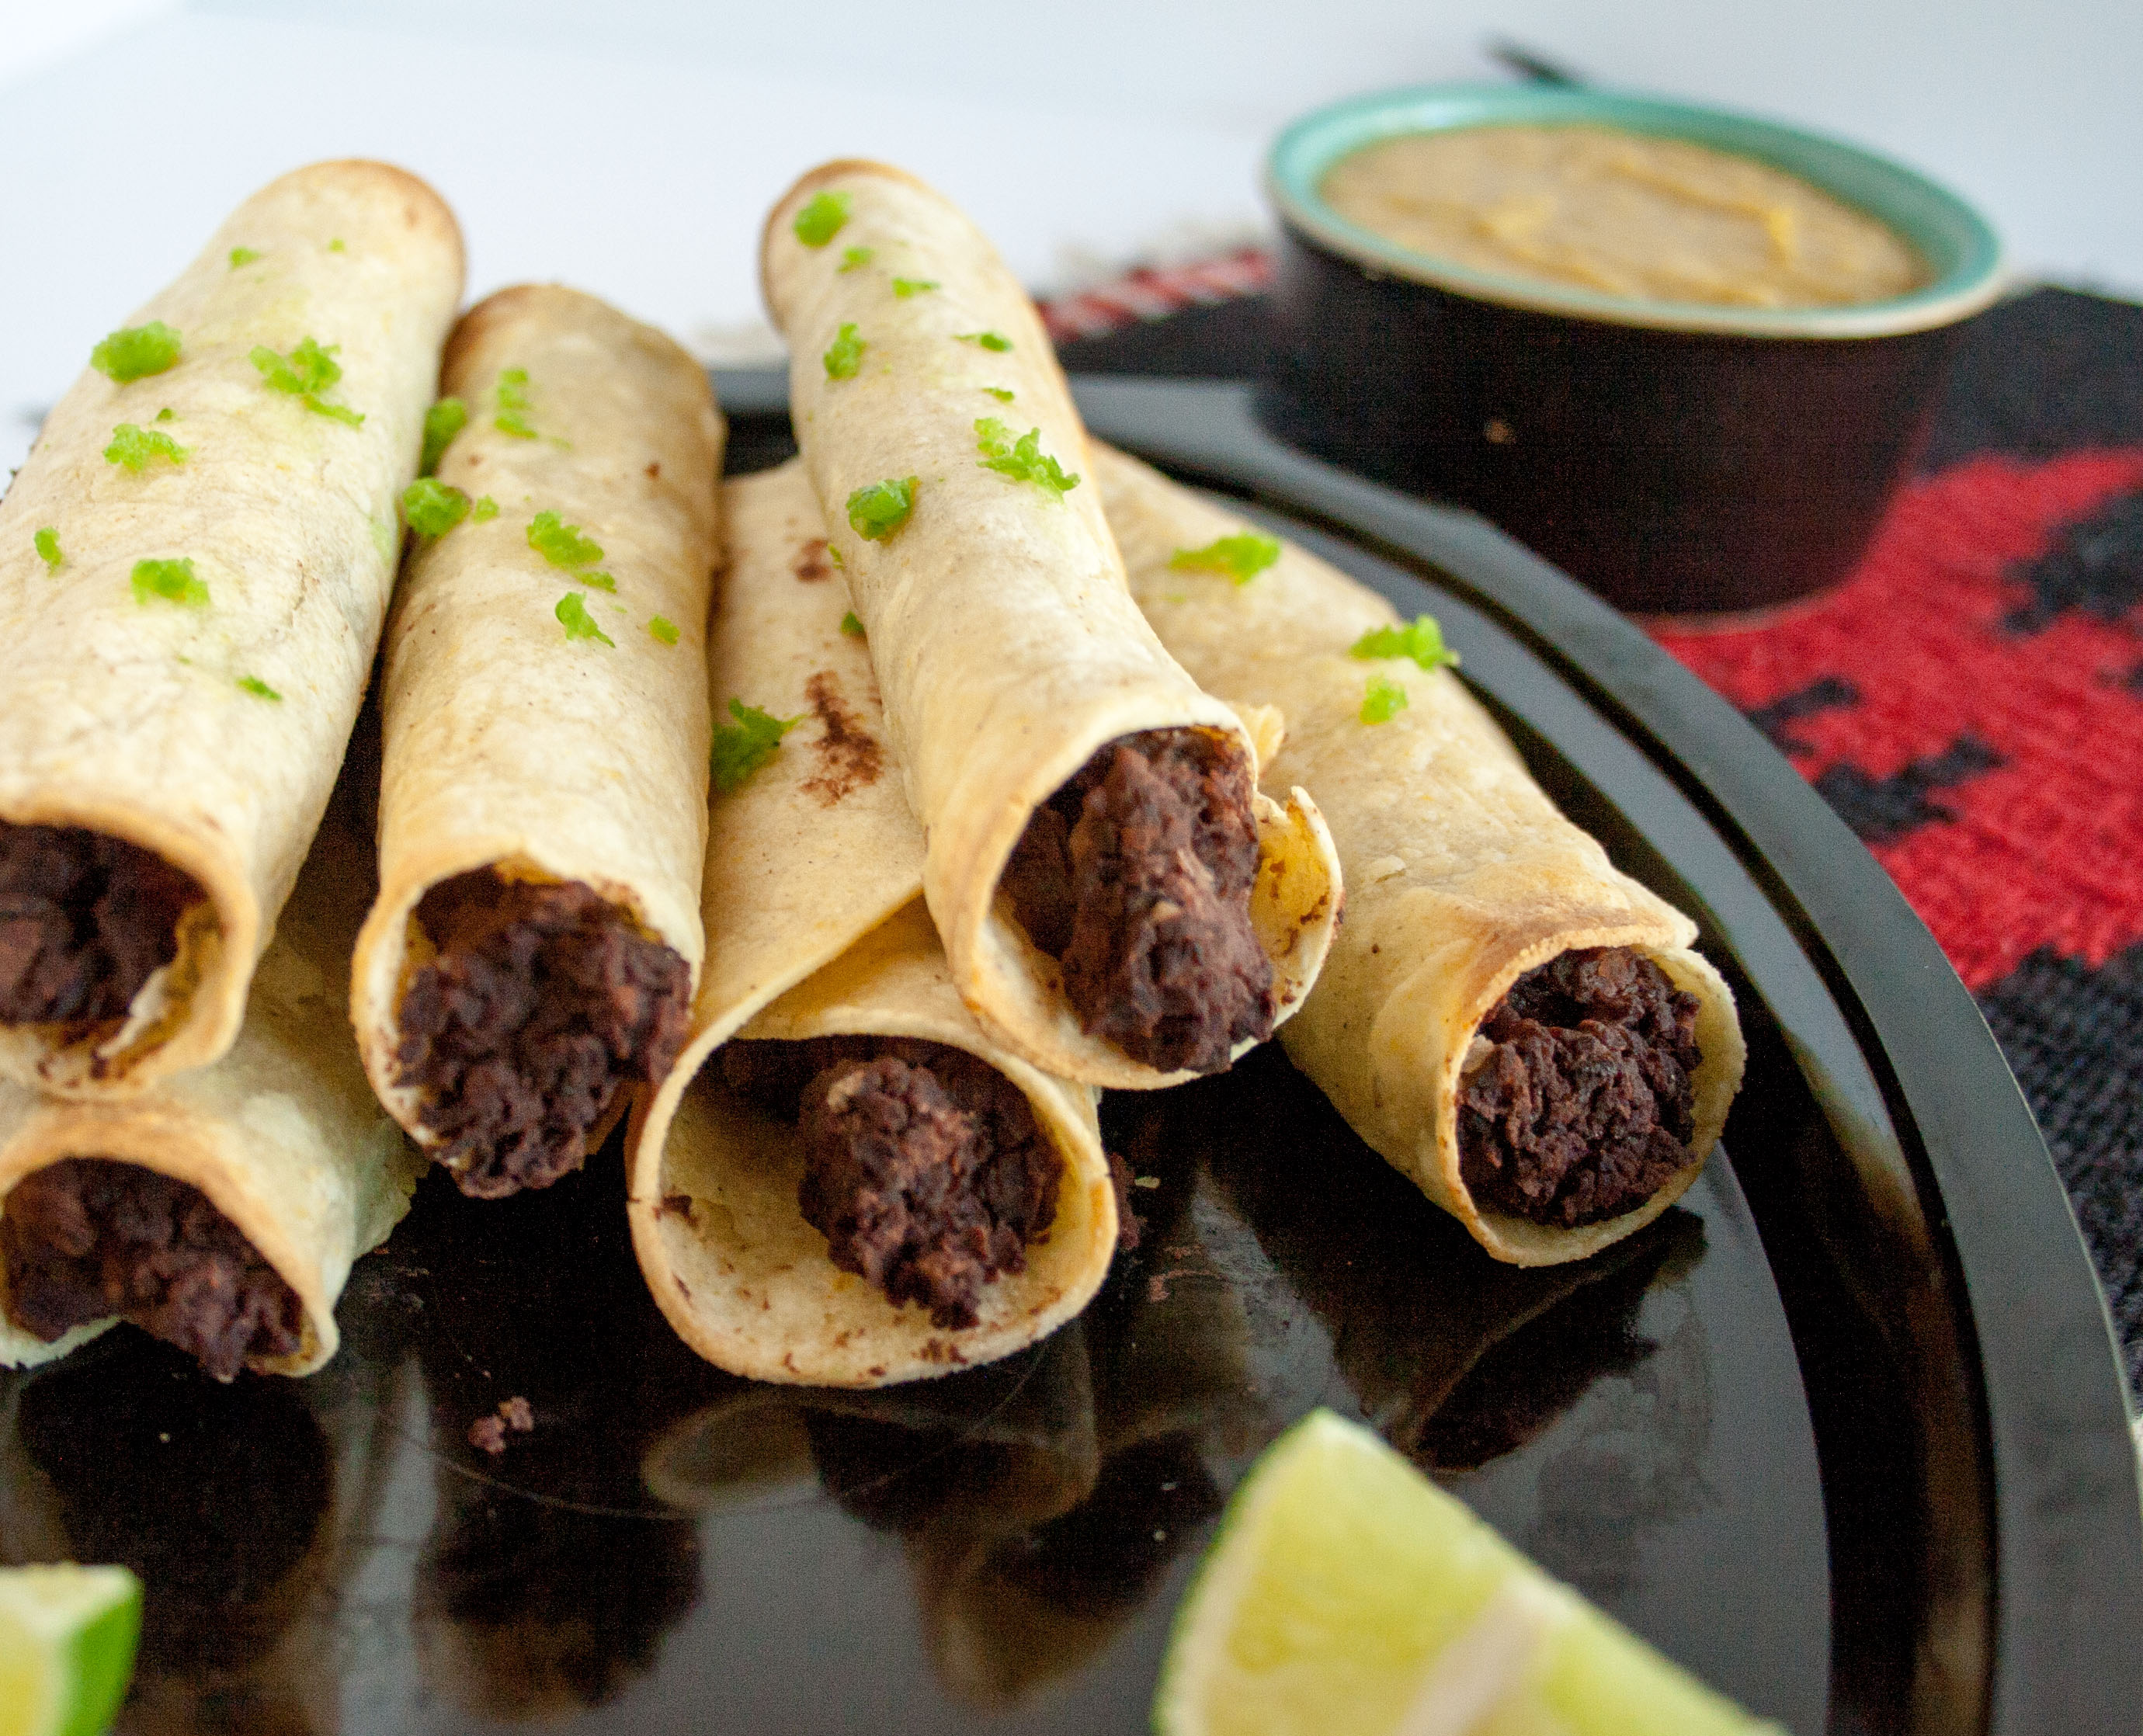 Bean Taquitos with Vegan Nacho Cheese close up.